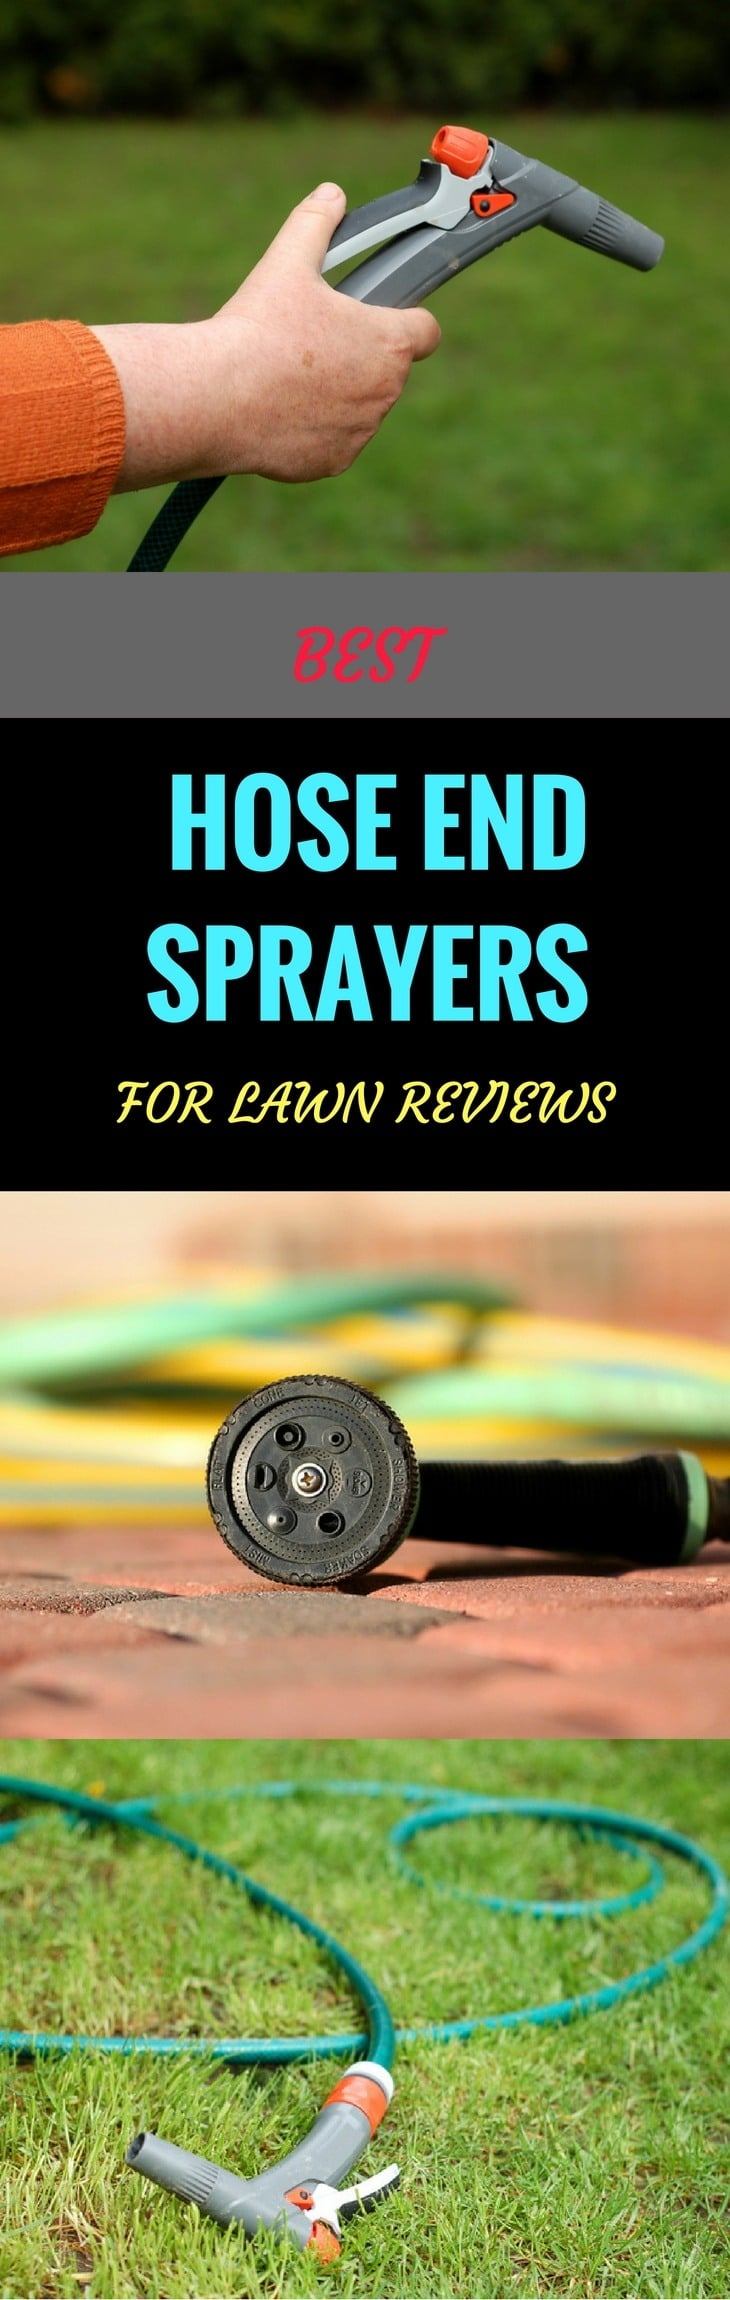 5 Best Hose End Sprayers For Lawn & Trees 2018 Reviews